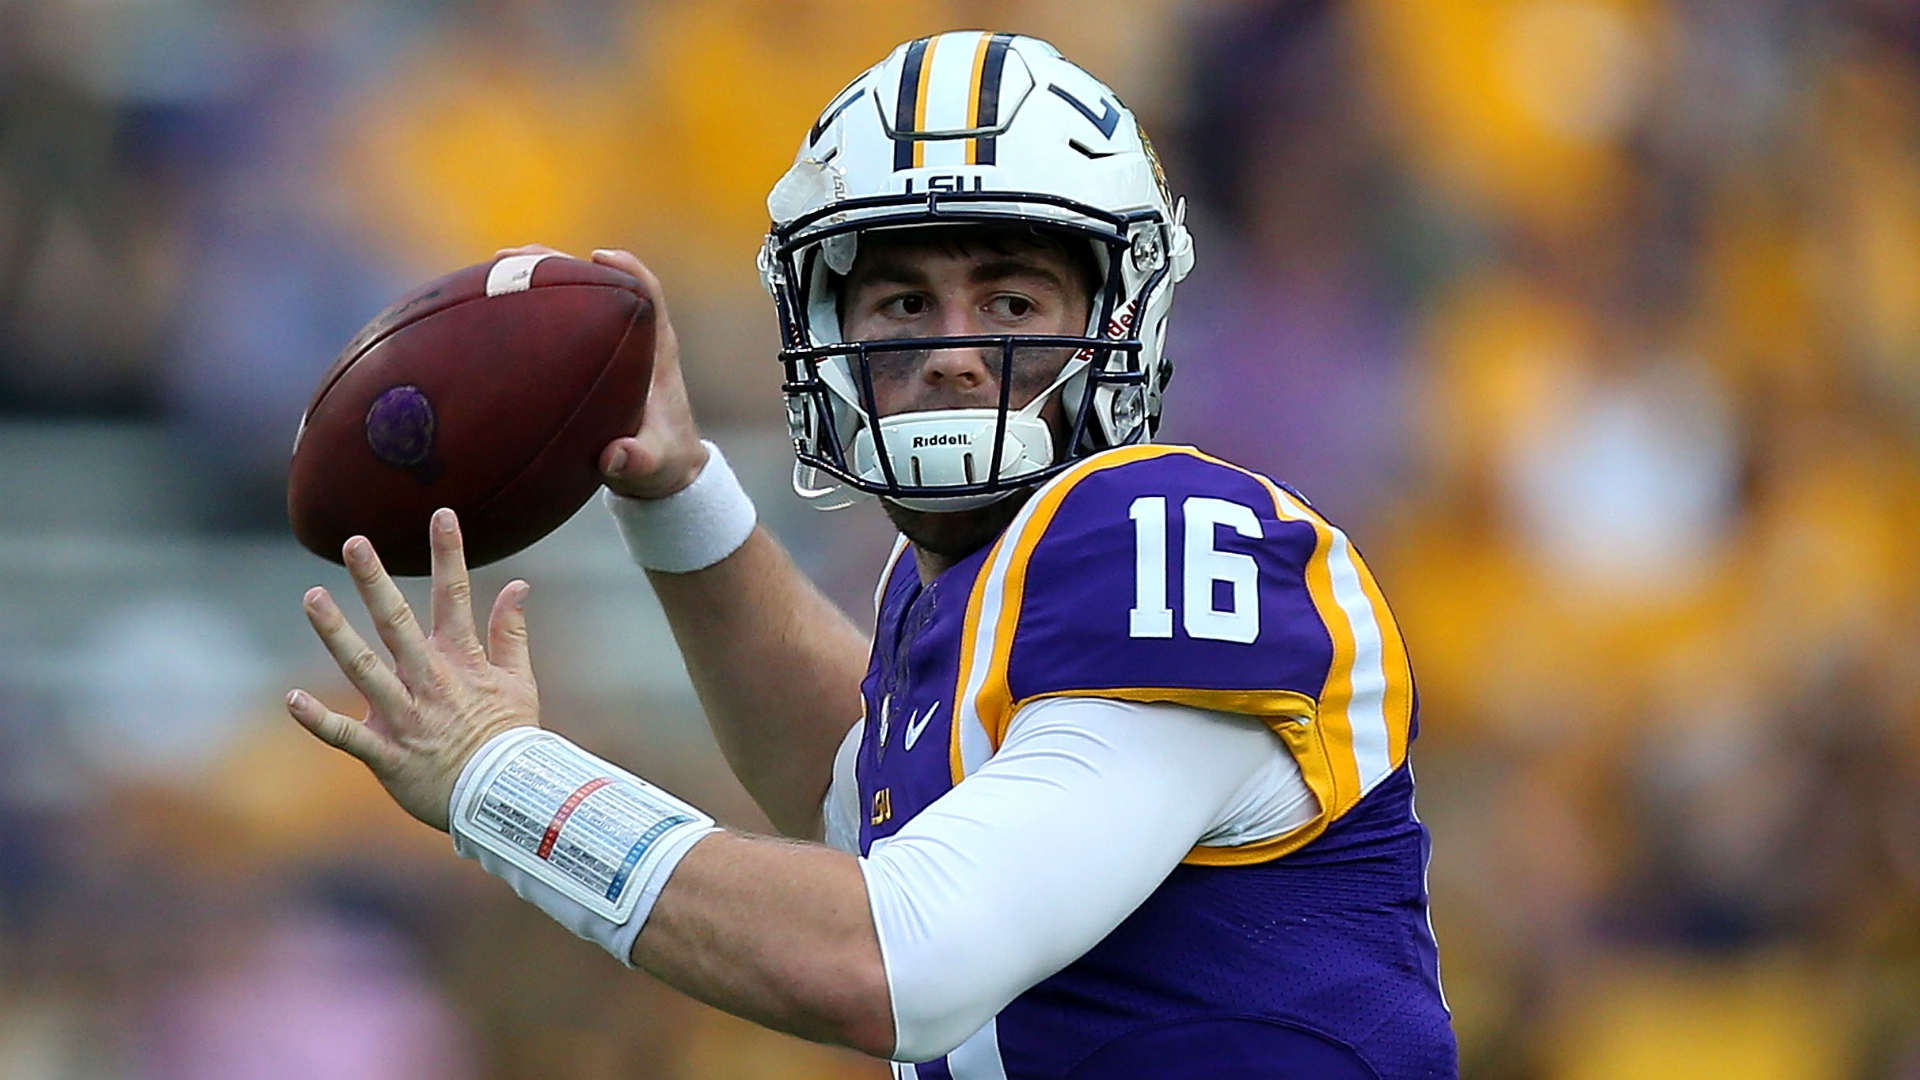 LSU QB Danny Etling returns from injury, but comeback ...